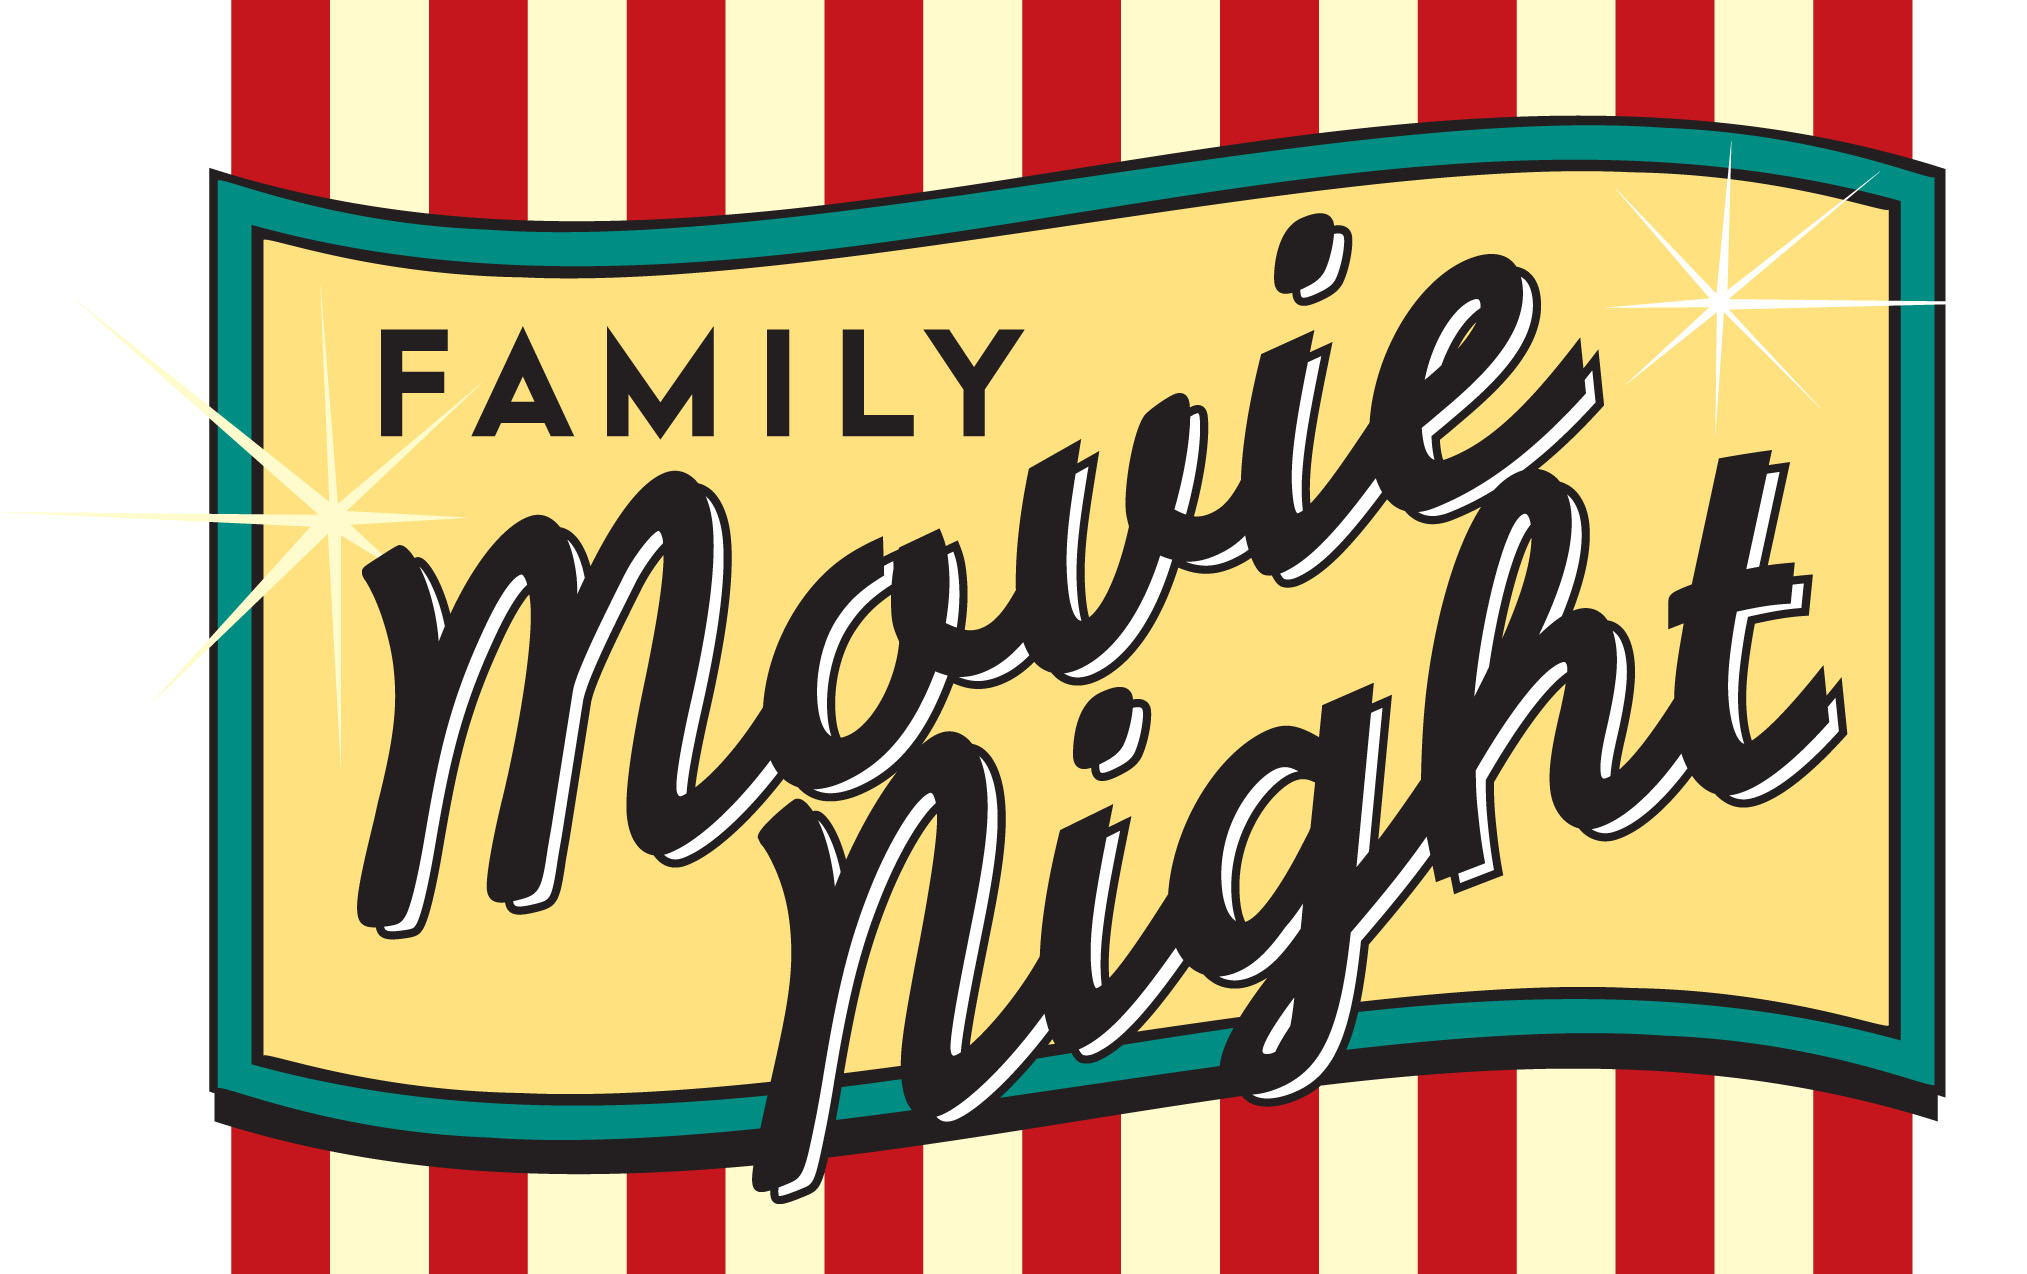 Family Movie Night Clipart